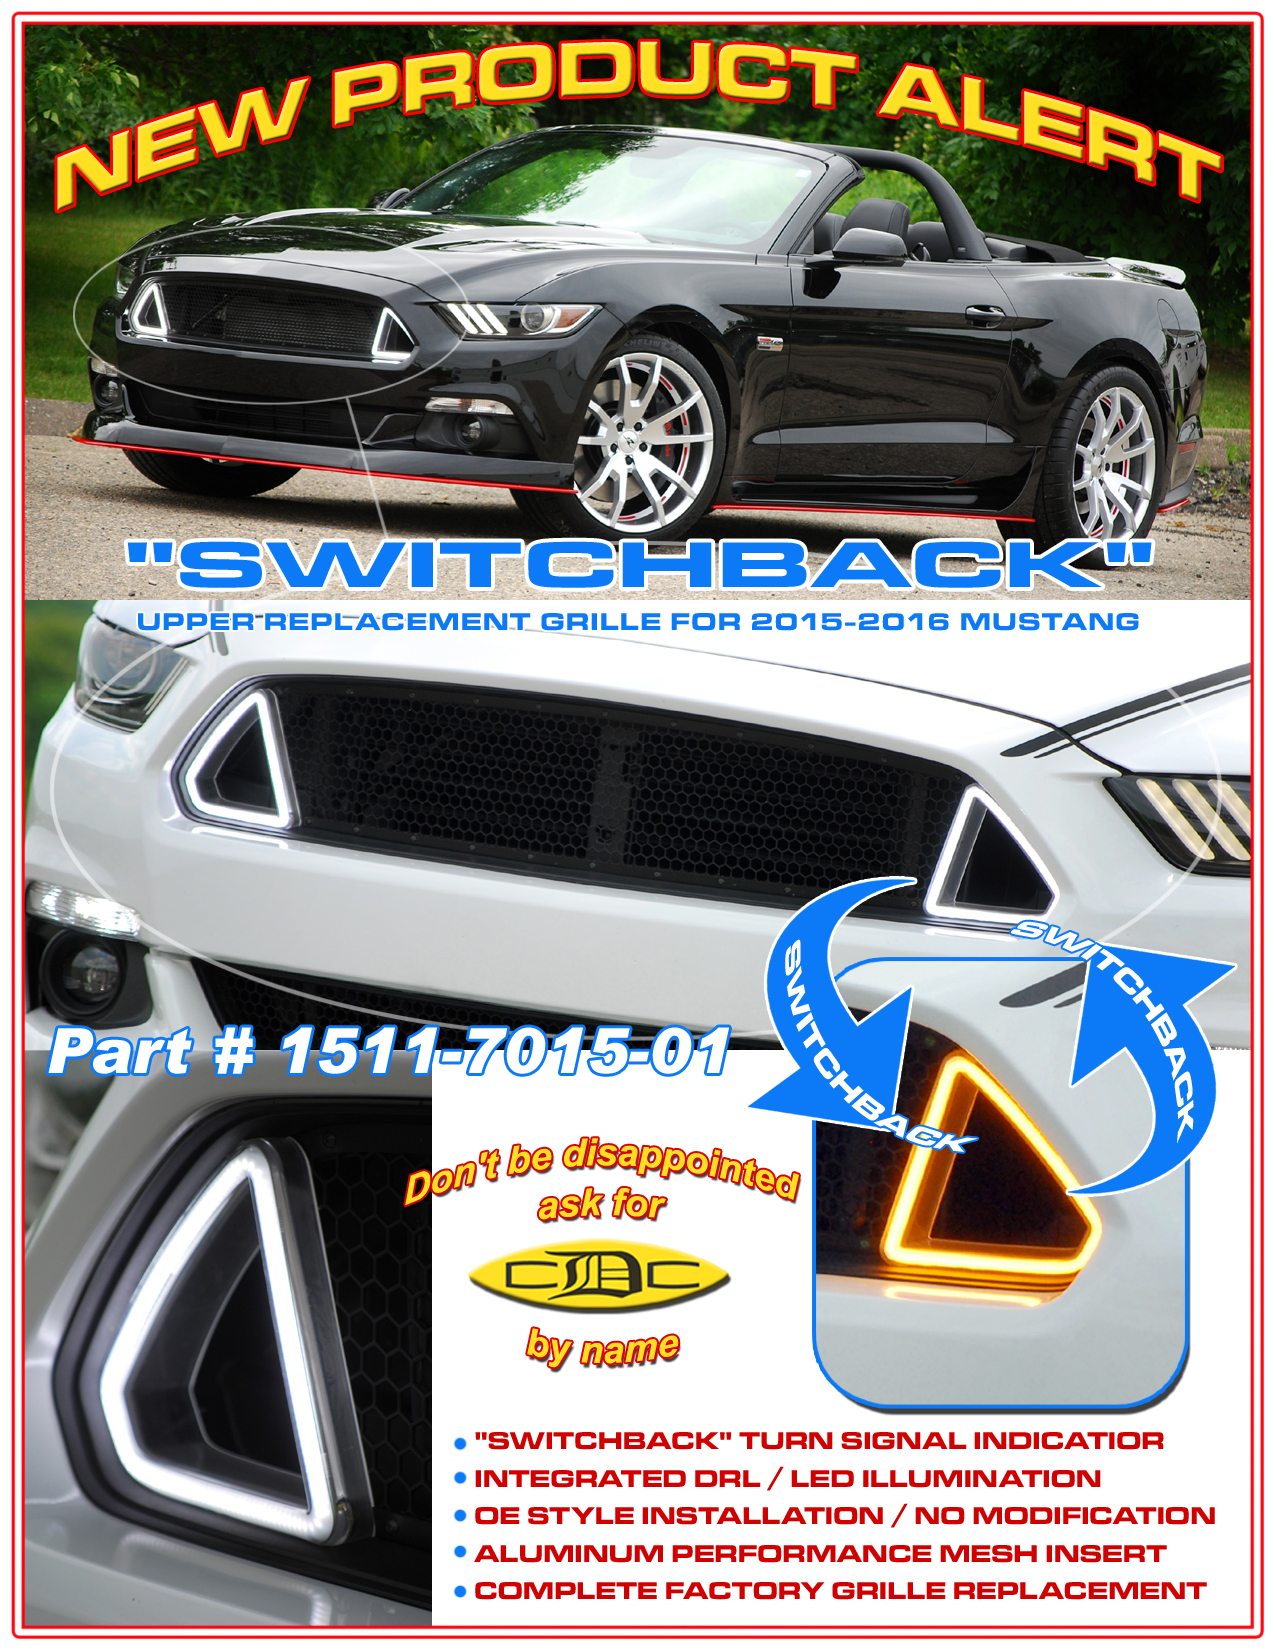 switchabck-flyer.jpg